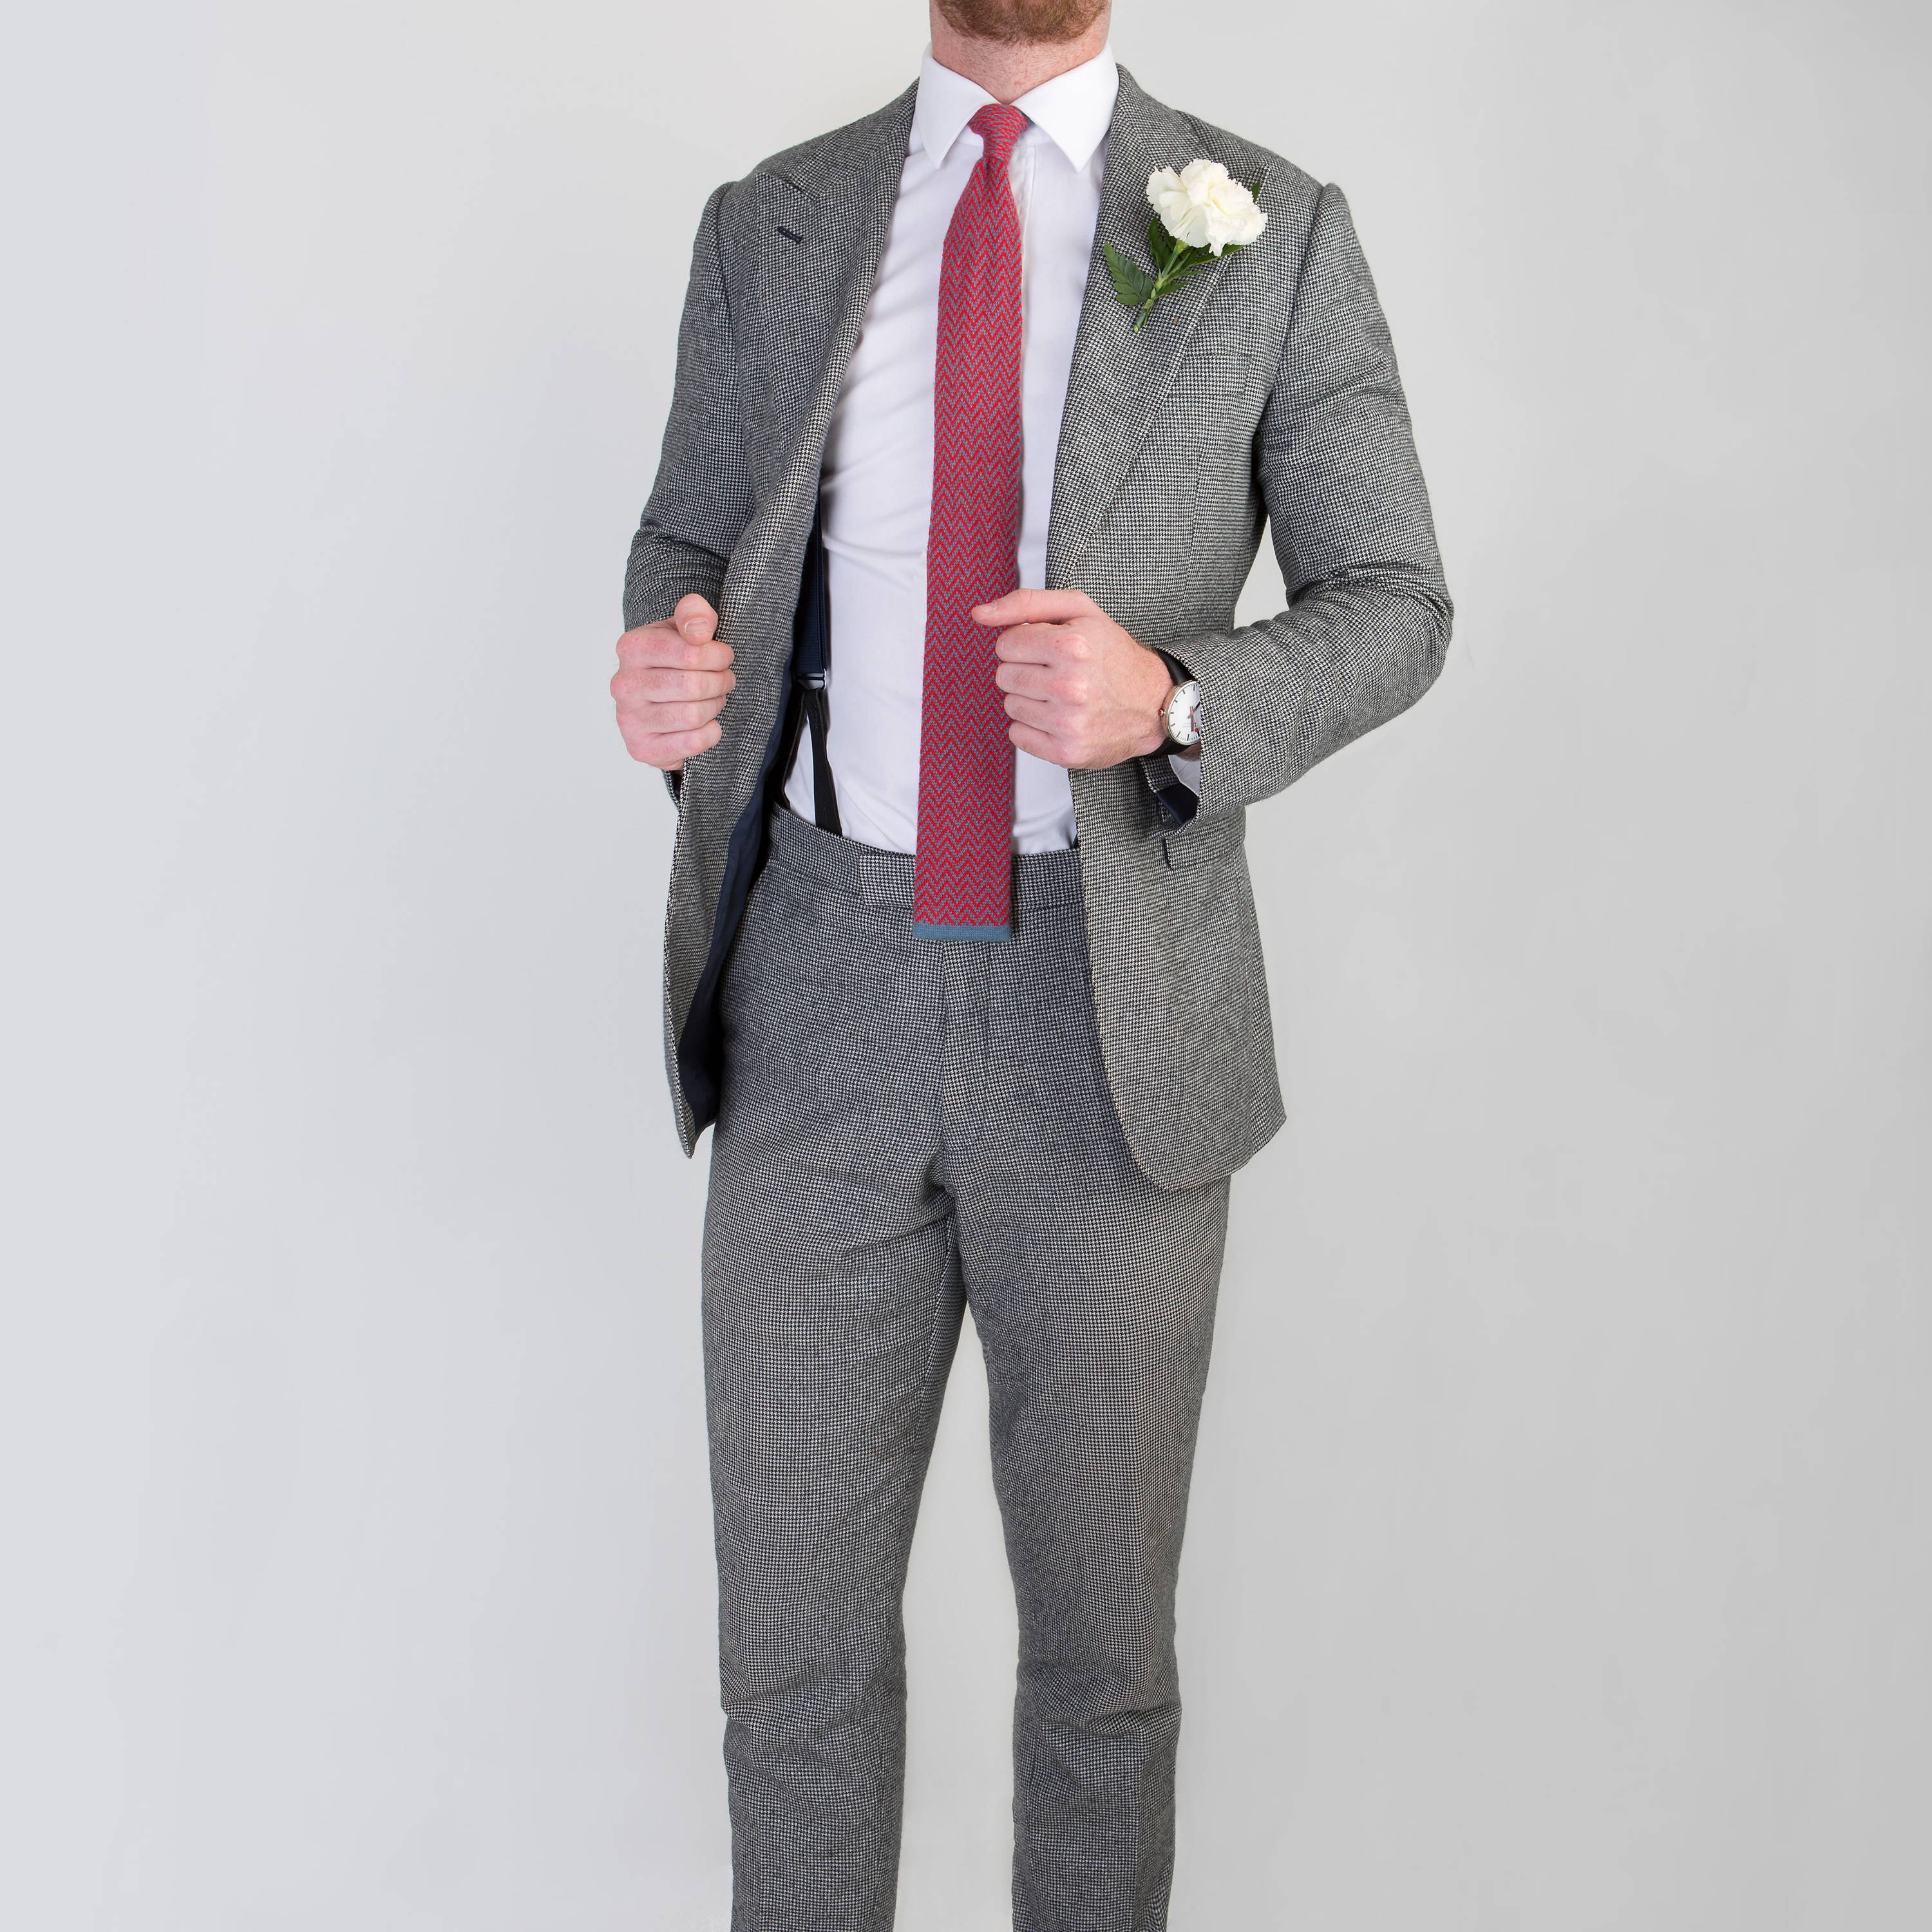 Single breasted wedding suit worn by Mullen and Mullen bespoke tailoring